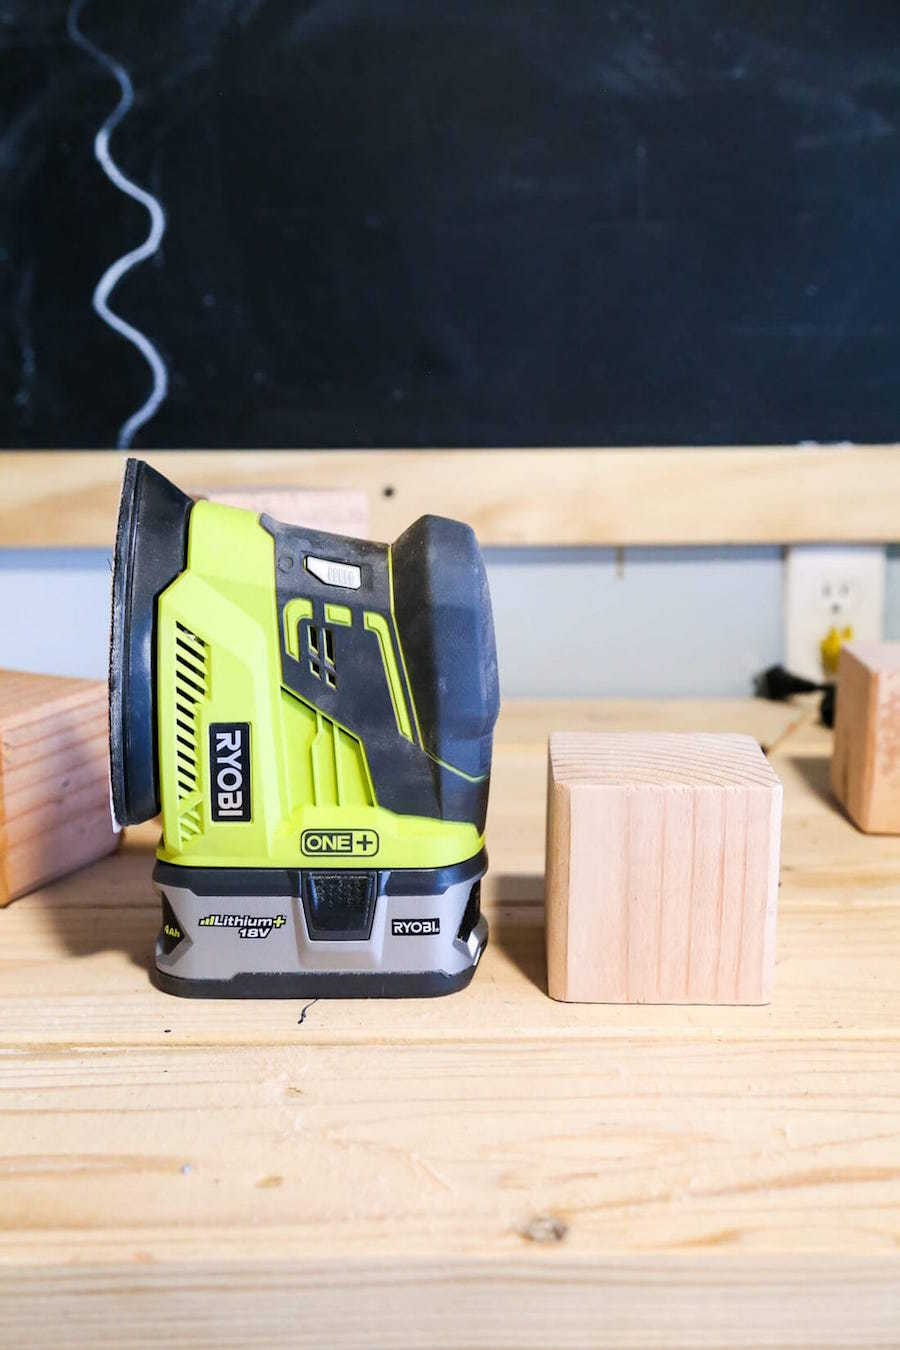 unfinished wood dice next to a power sander